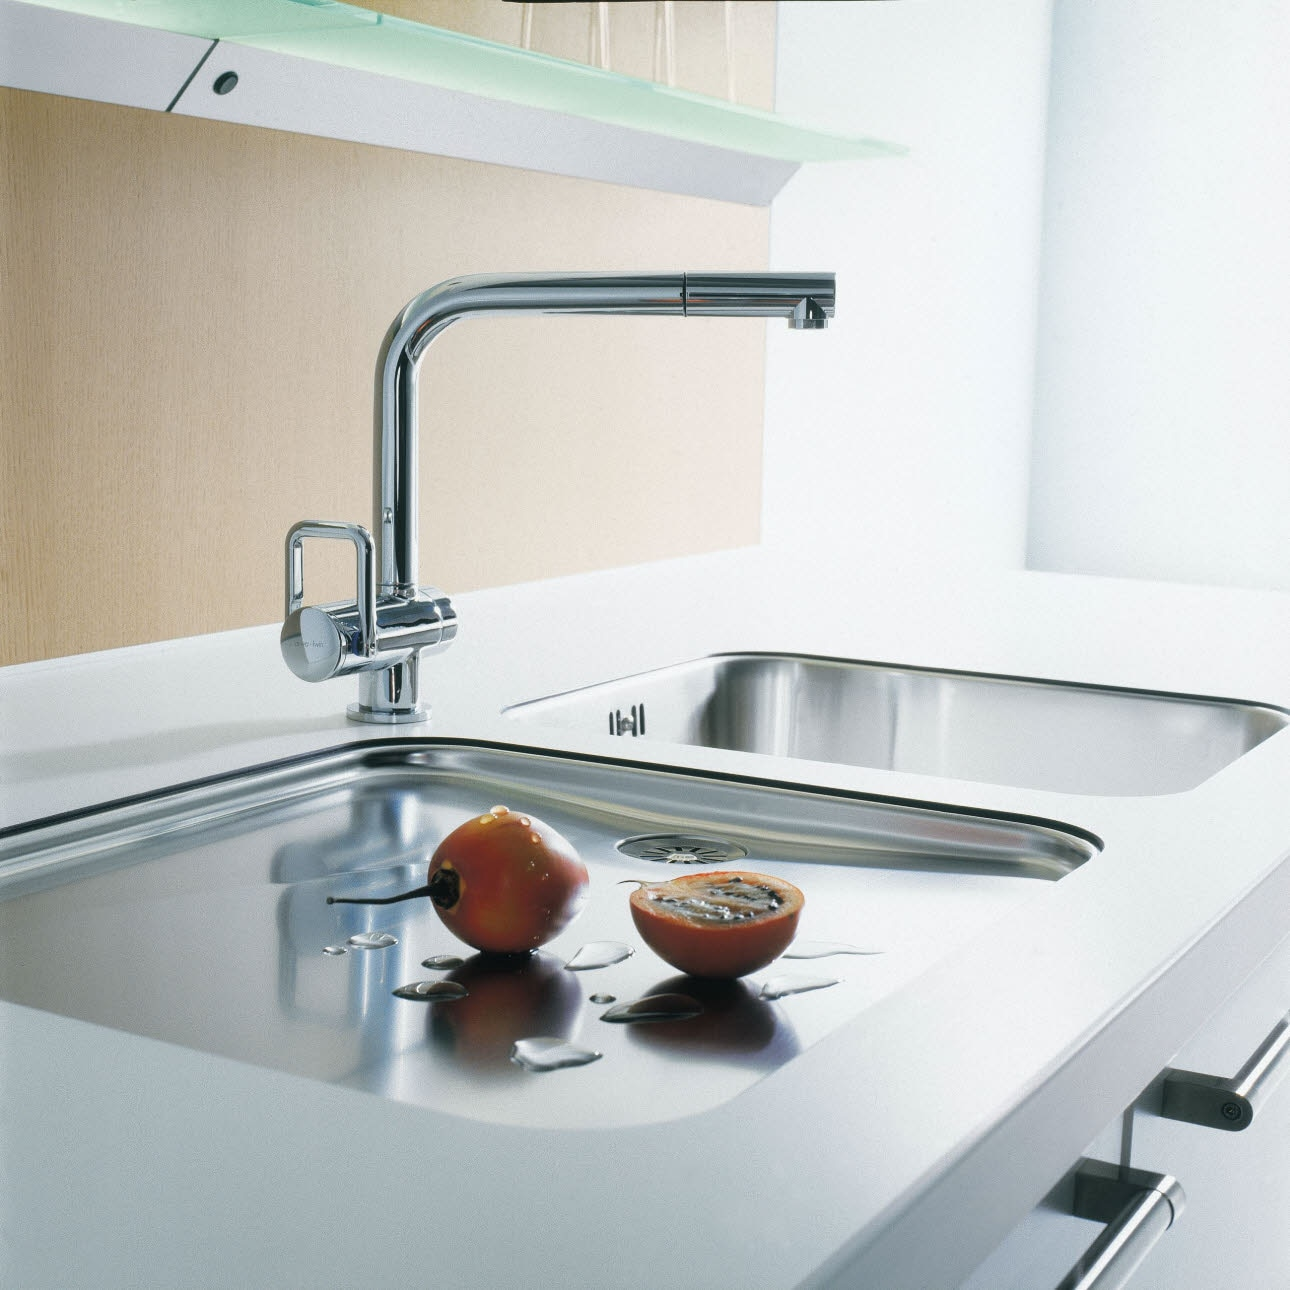 Flush-mounted sinks attached from below